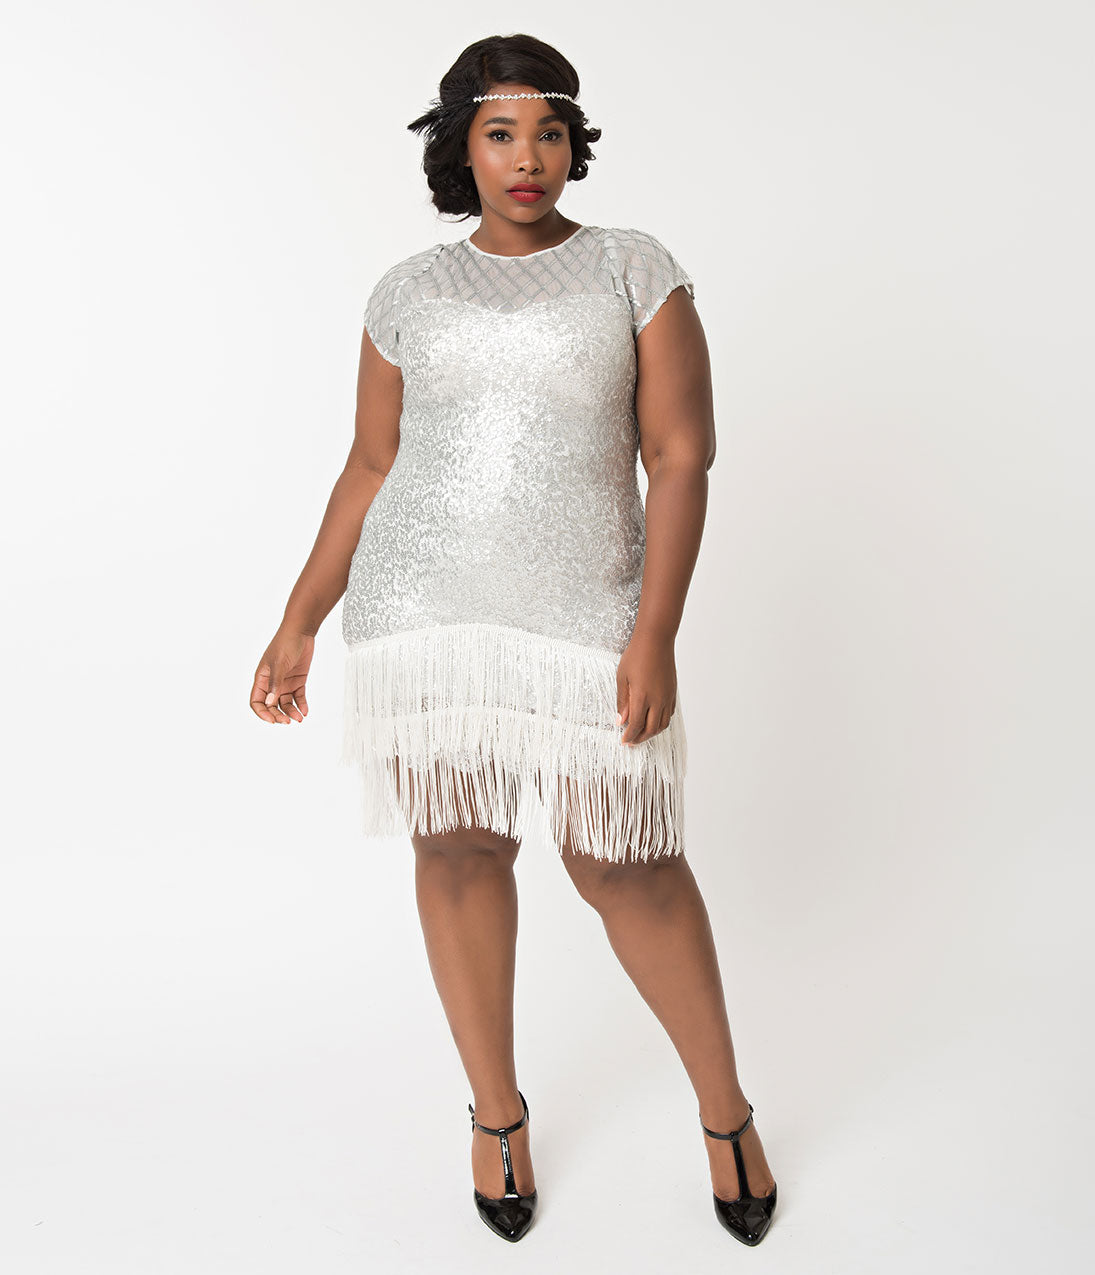 20s Dresses | 1920s Dresses for Sale Unique Vintage Plus Size 1920S Antique Silver Sequin Fringe Del Mar Flapper Dress $58.00 AT vintagedancer.com